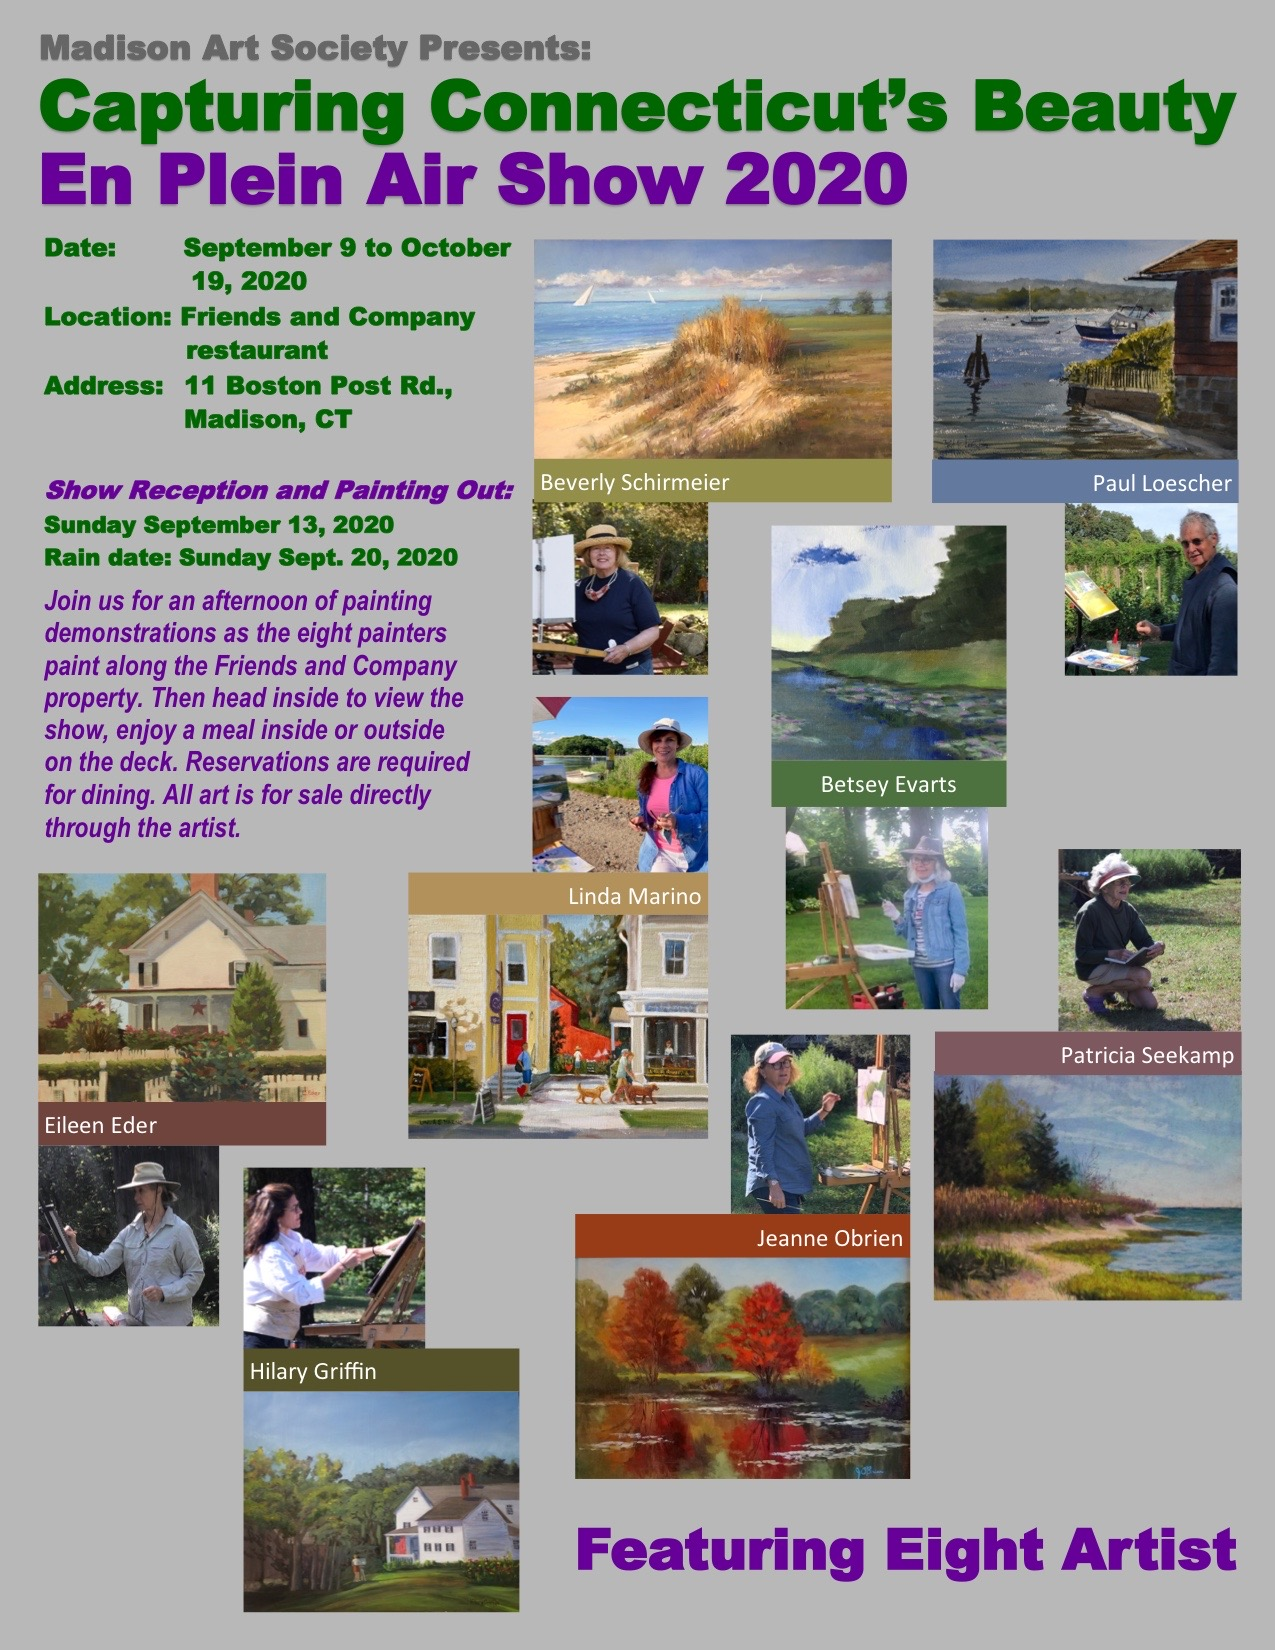 MAS presents Capturing Connecticut's Beauty En Plein Air Show 2020 - Sept 9th through Oct 19th at Friends and Company